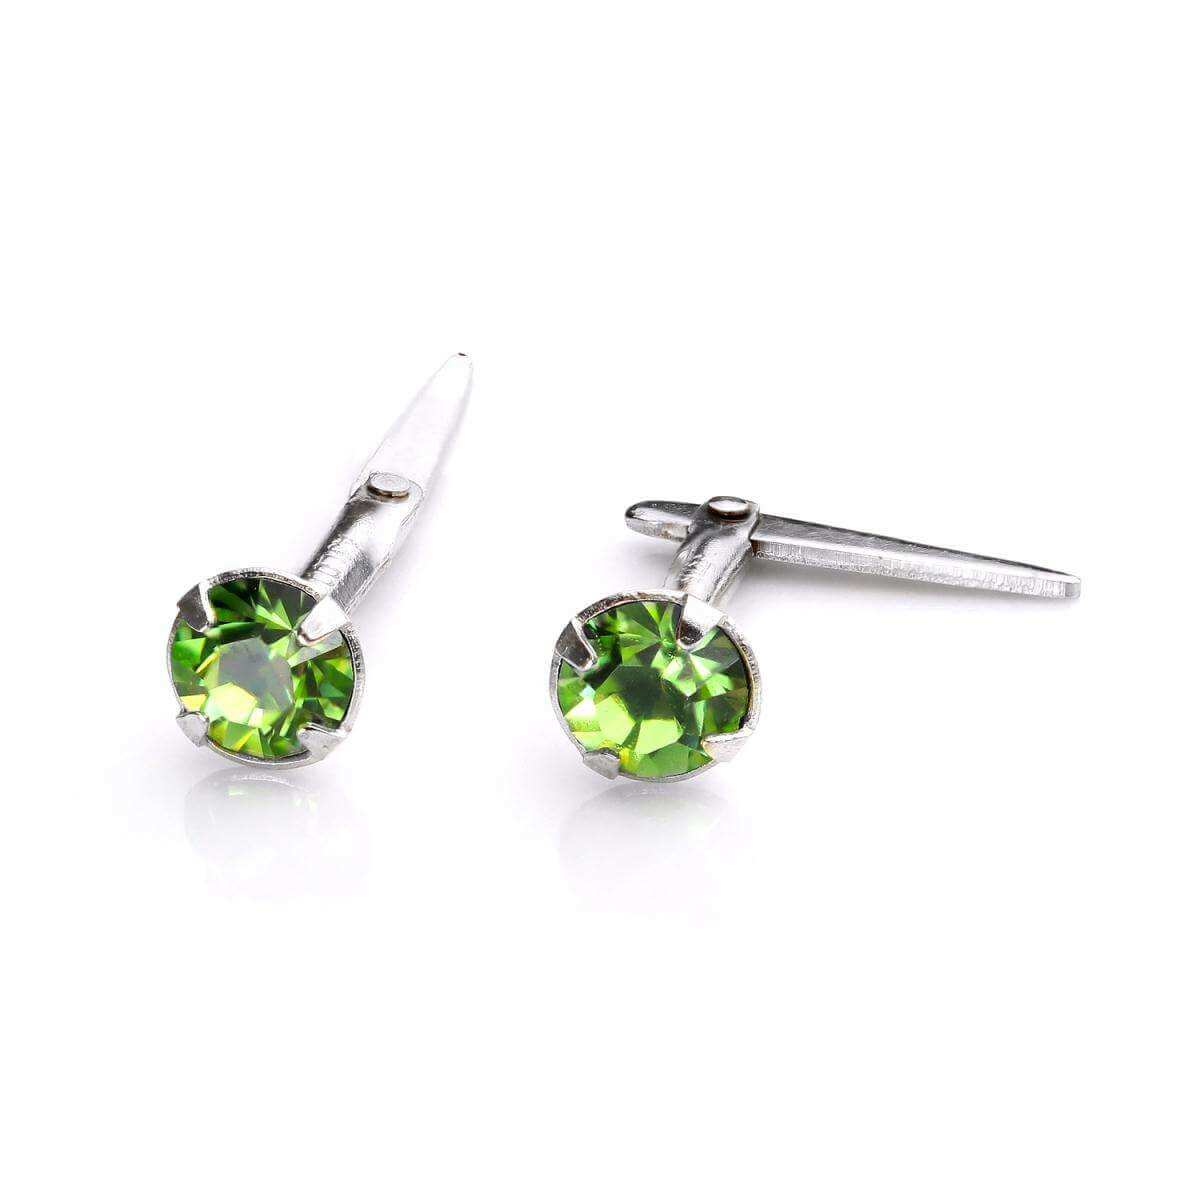 Sterling Silver Andralok Stud Earrings with 3mm Peridot Crystal